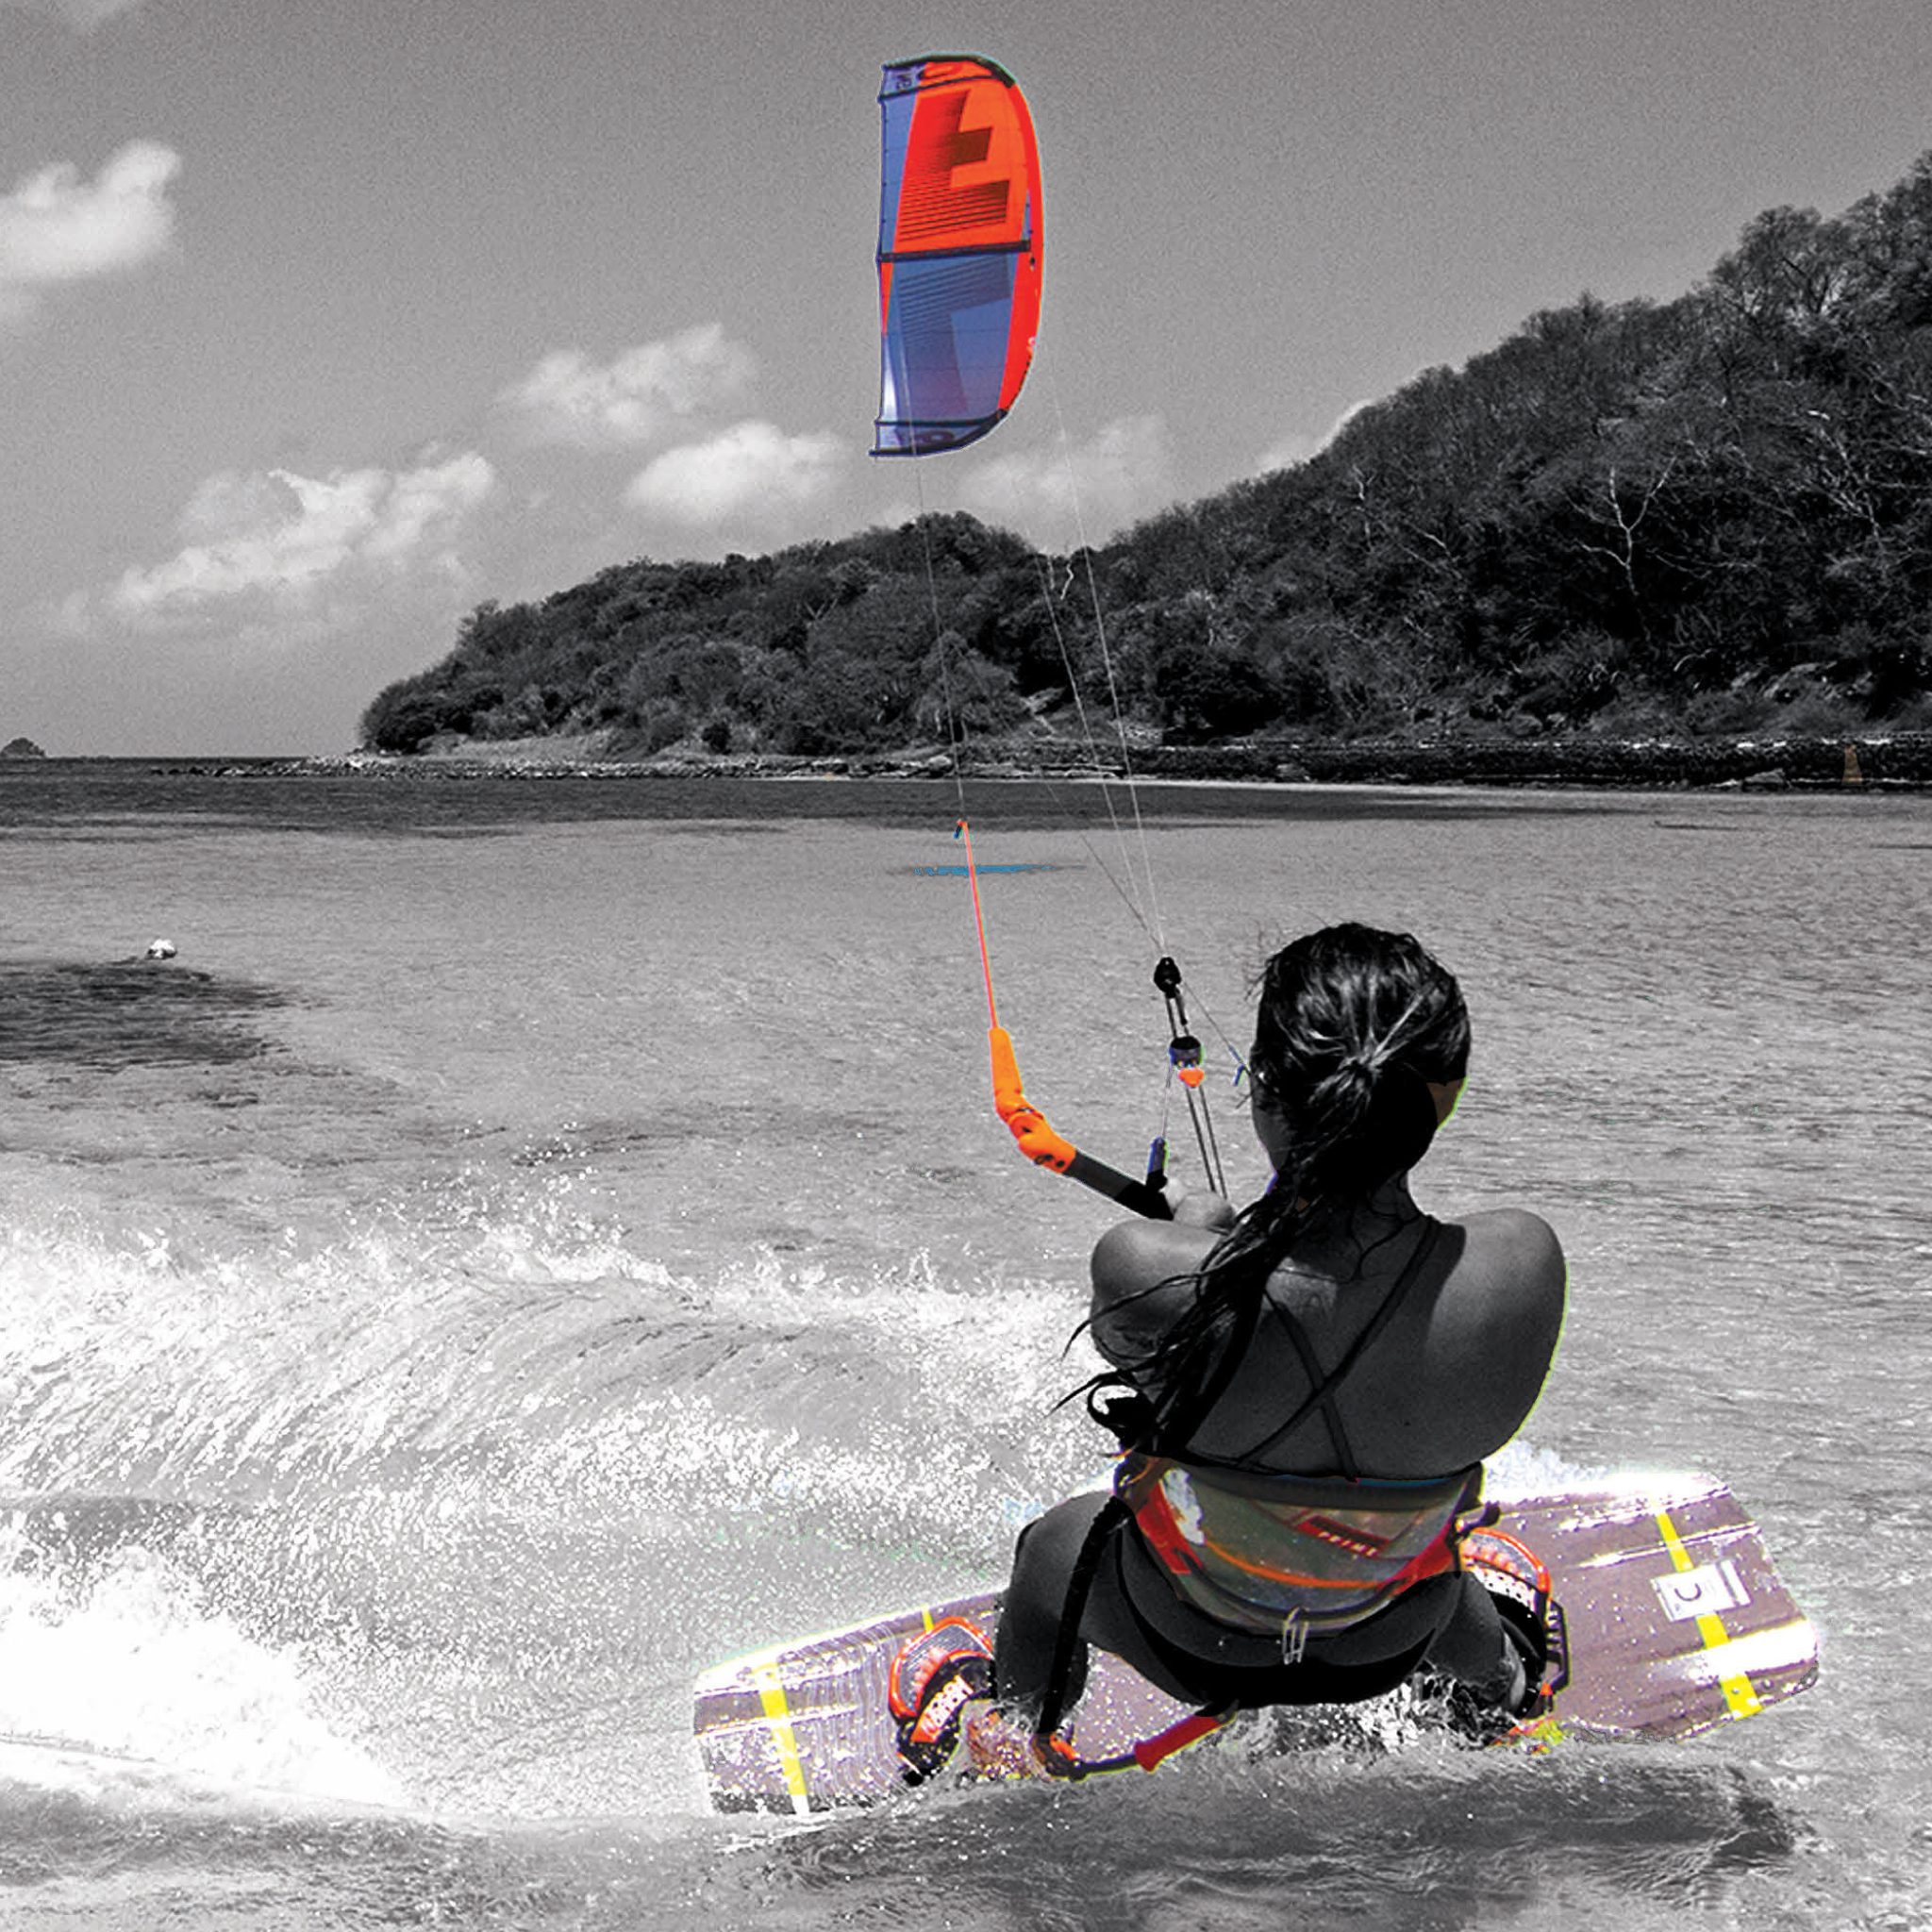 kitesurf wallpaper image - Sensi Graves with the 2015 Liquid Force Envy Kite and riding the carbon element kiteboard - in resolution: iPad 2 & 3 2048 X 2048